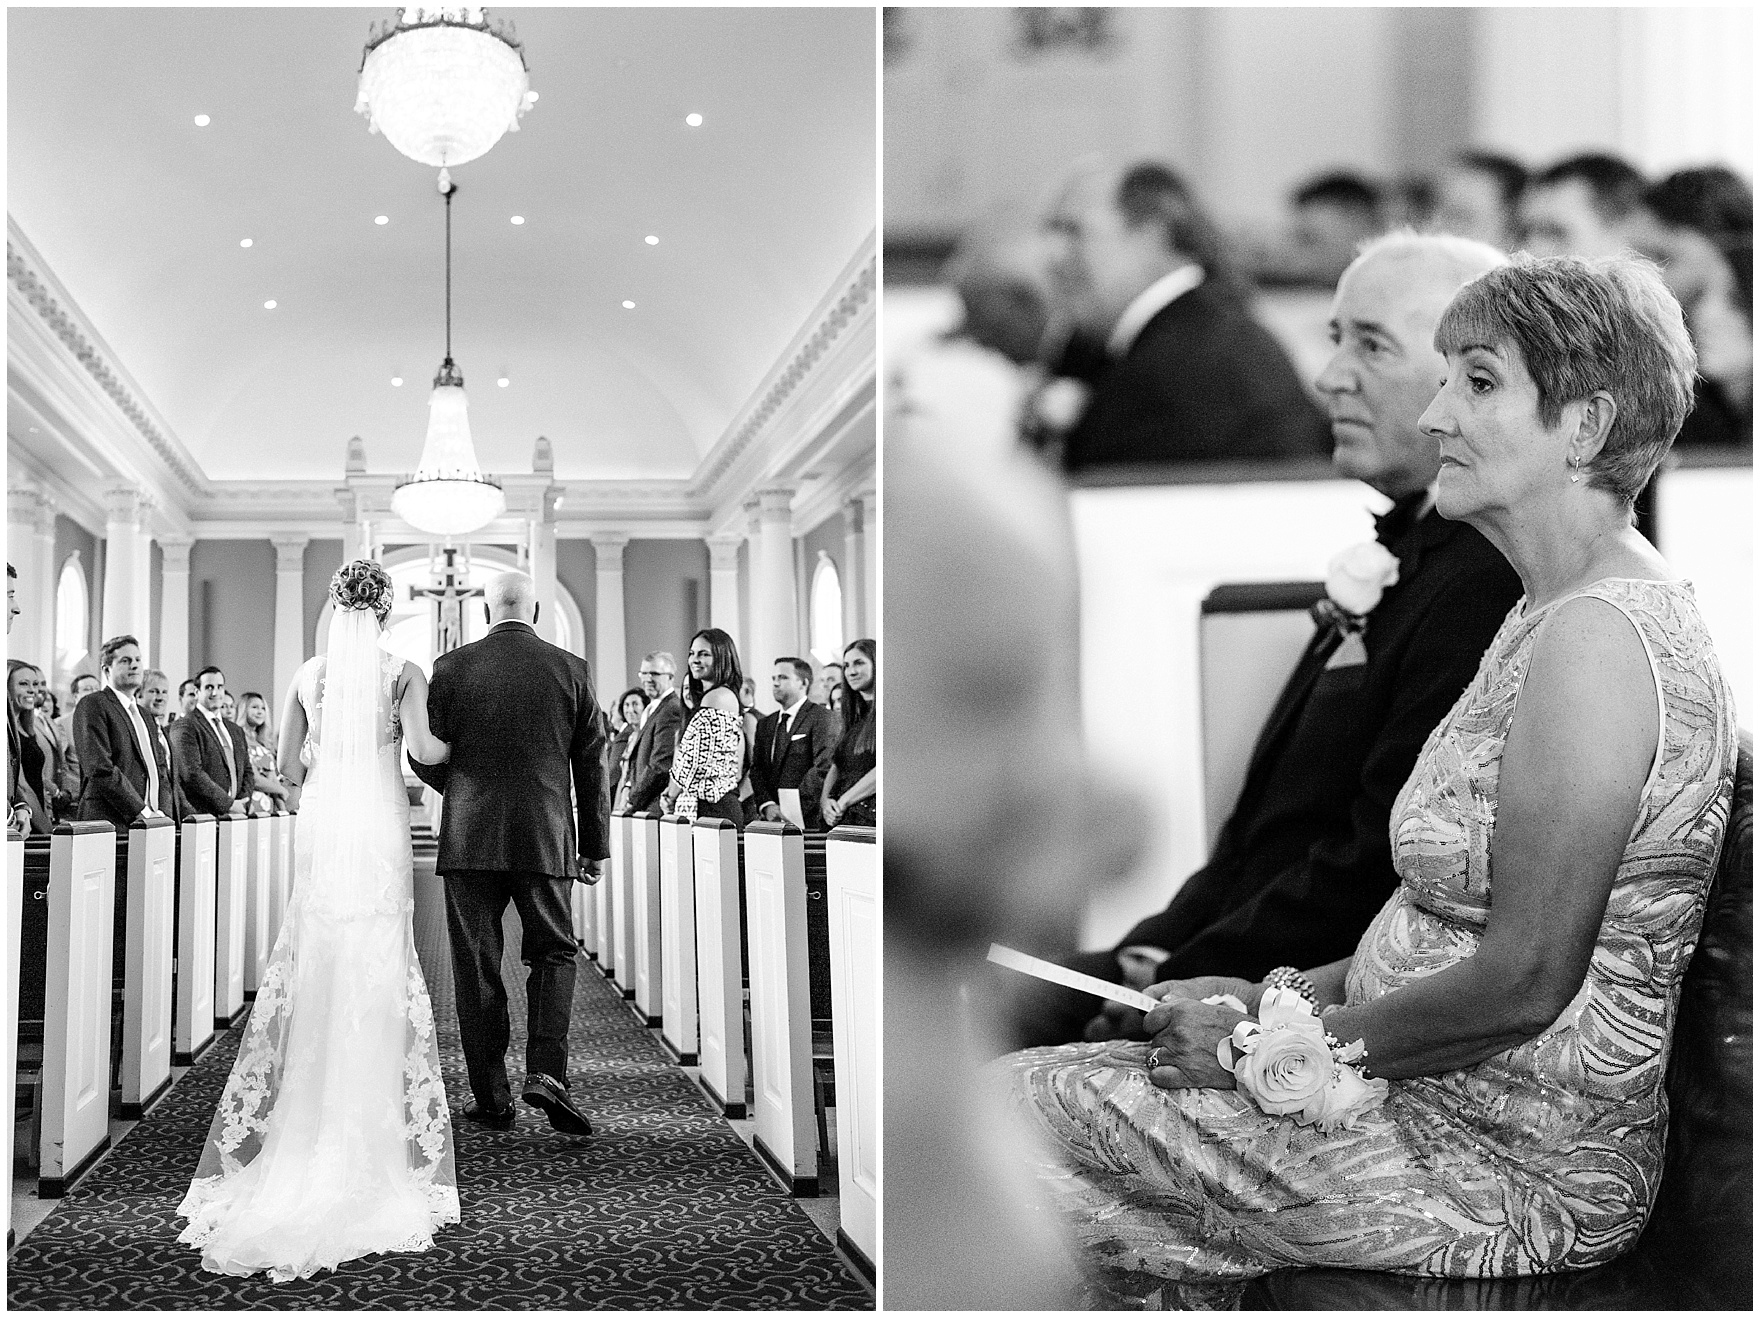 The bride and her father walk down the aisle during a Glen Club Glenview Illinois wedding.